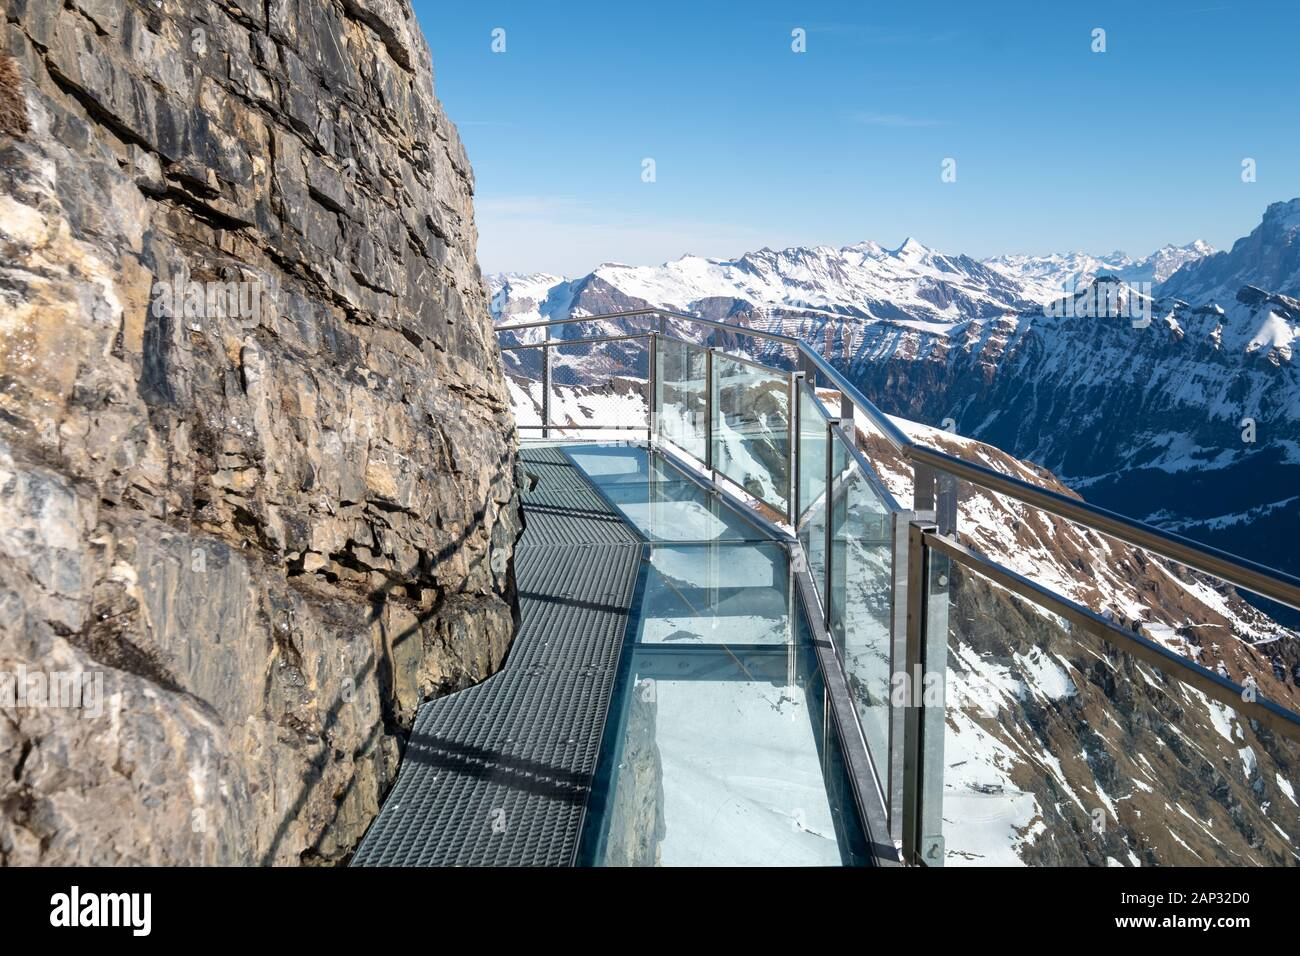 The Thrill Walk at Birg near Schiltorn in the Alps, Switzerland. It's a steel pathway  built into the cliffside with a vertical drop underneath. Stock Photo